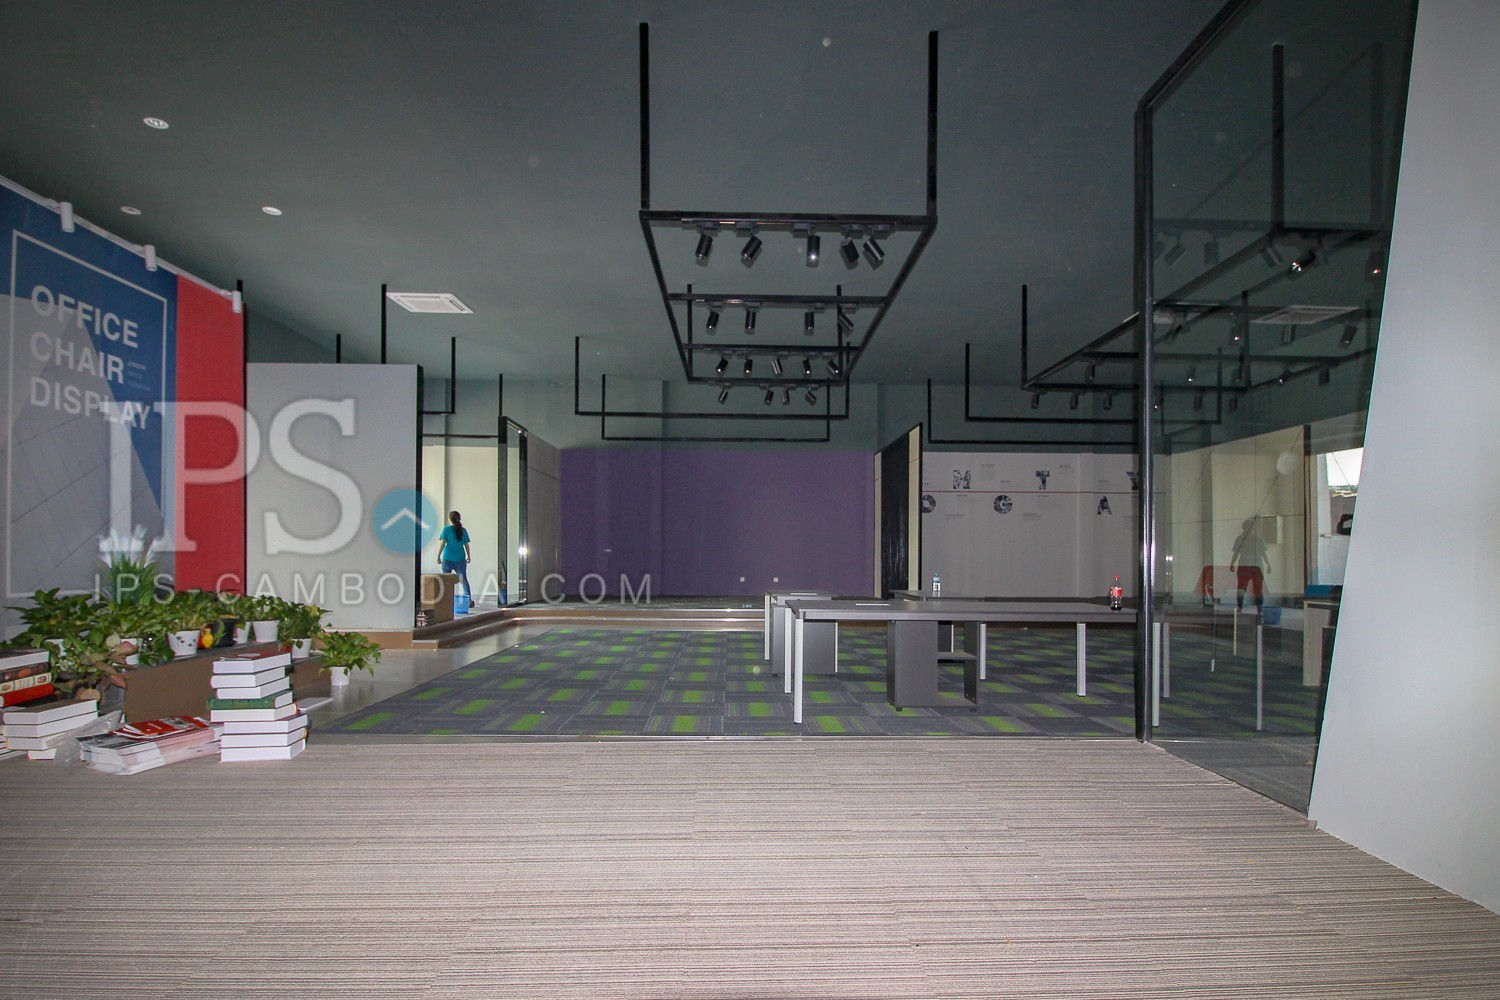 384 Sqm Commercial Showroom For Rent - Boeung Trabek, Phnom Penh